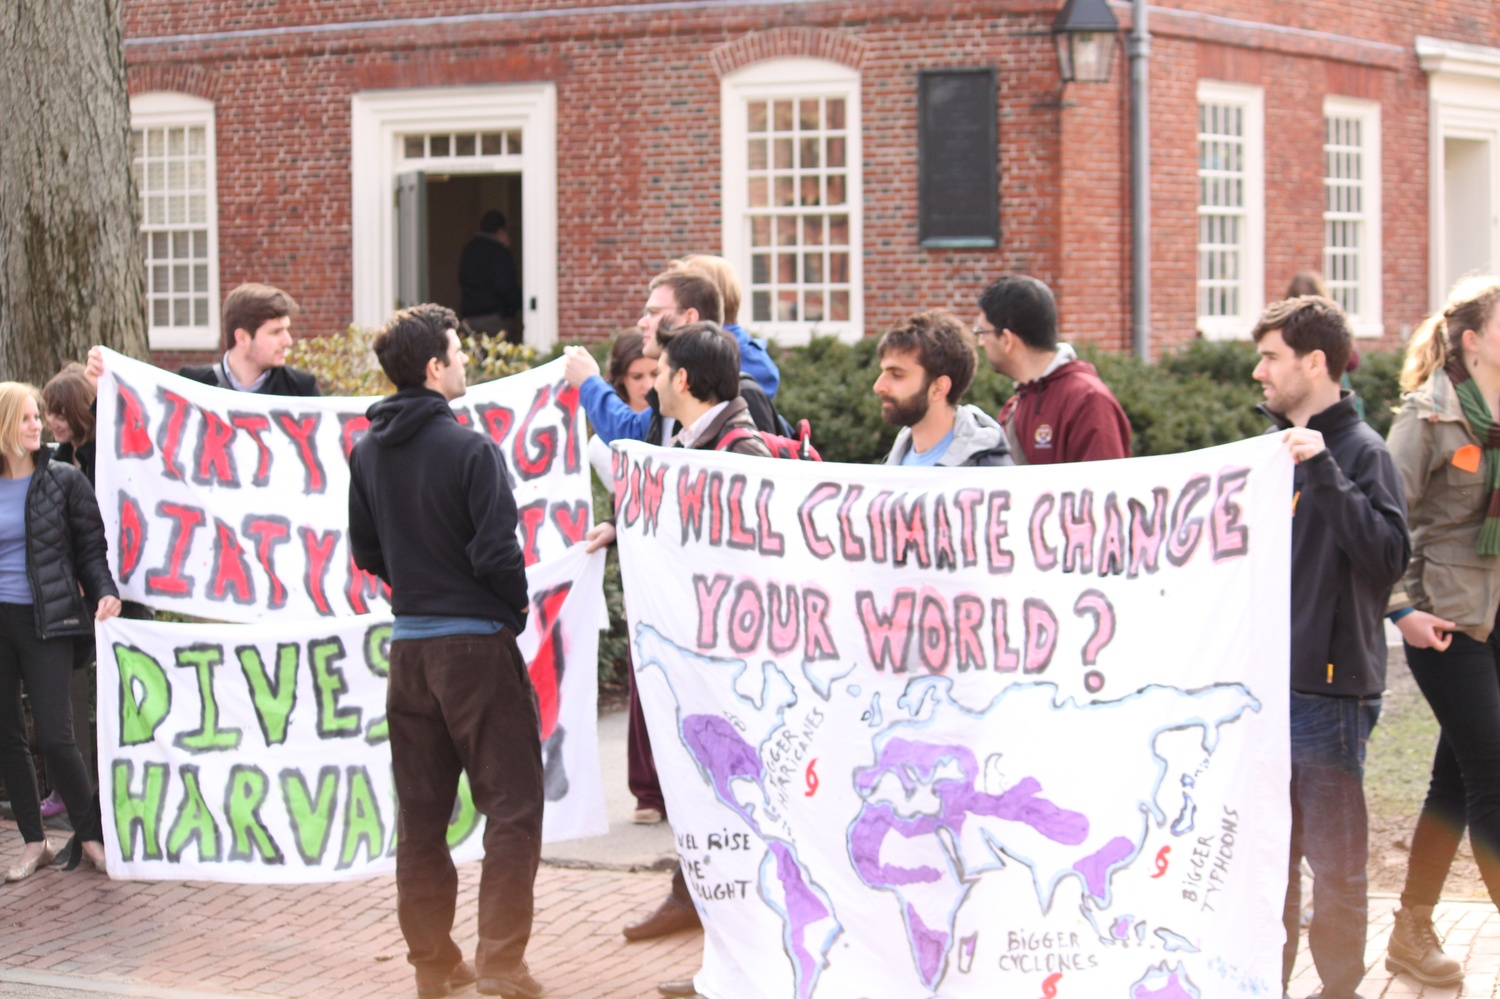 Divest Harvard from 2013